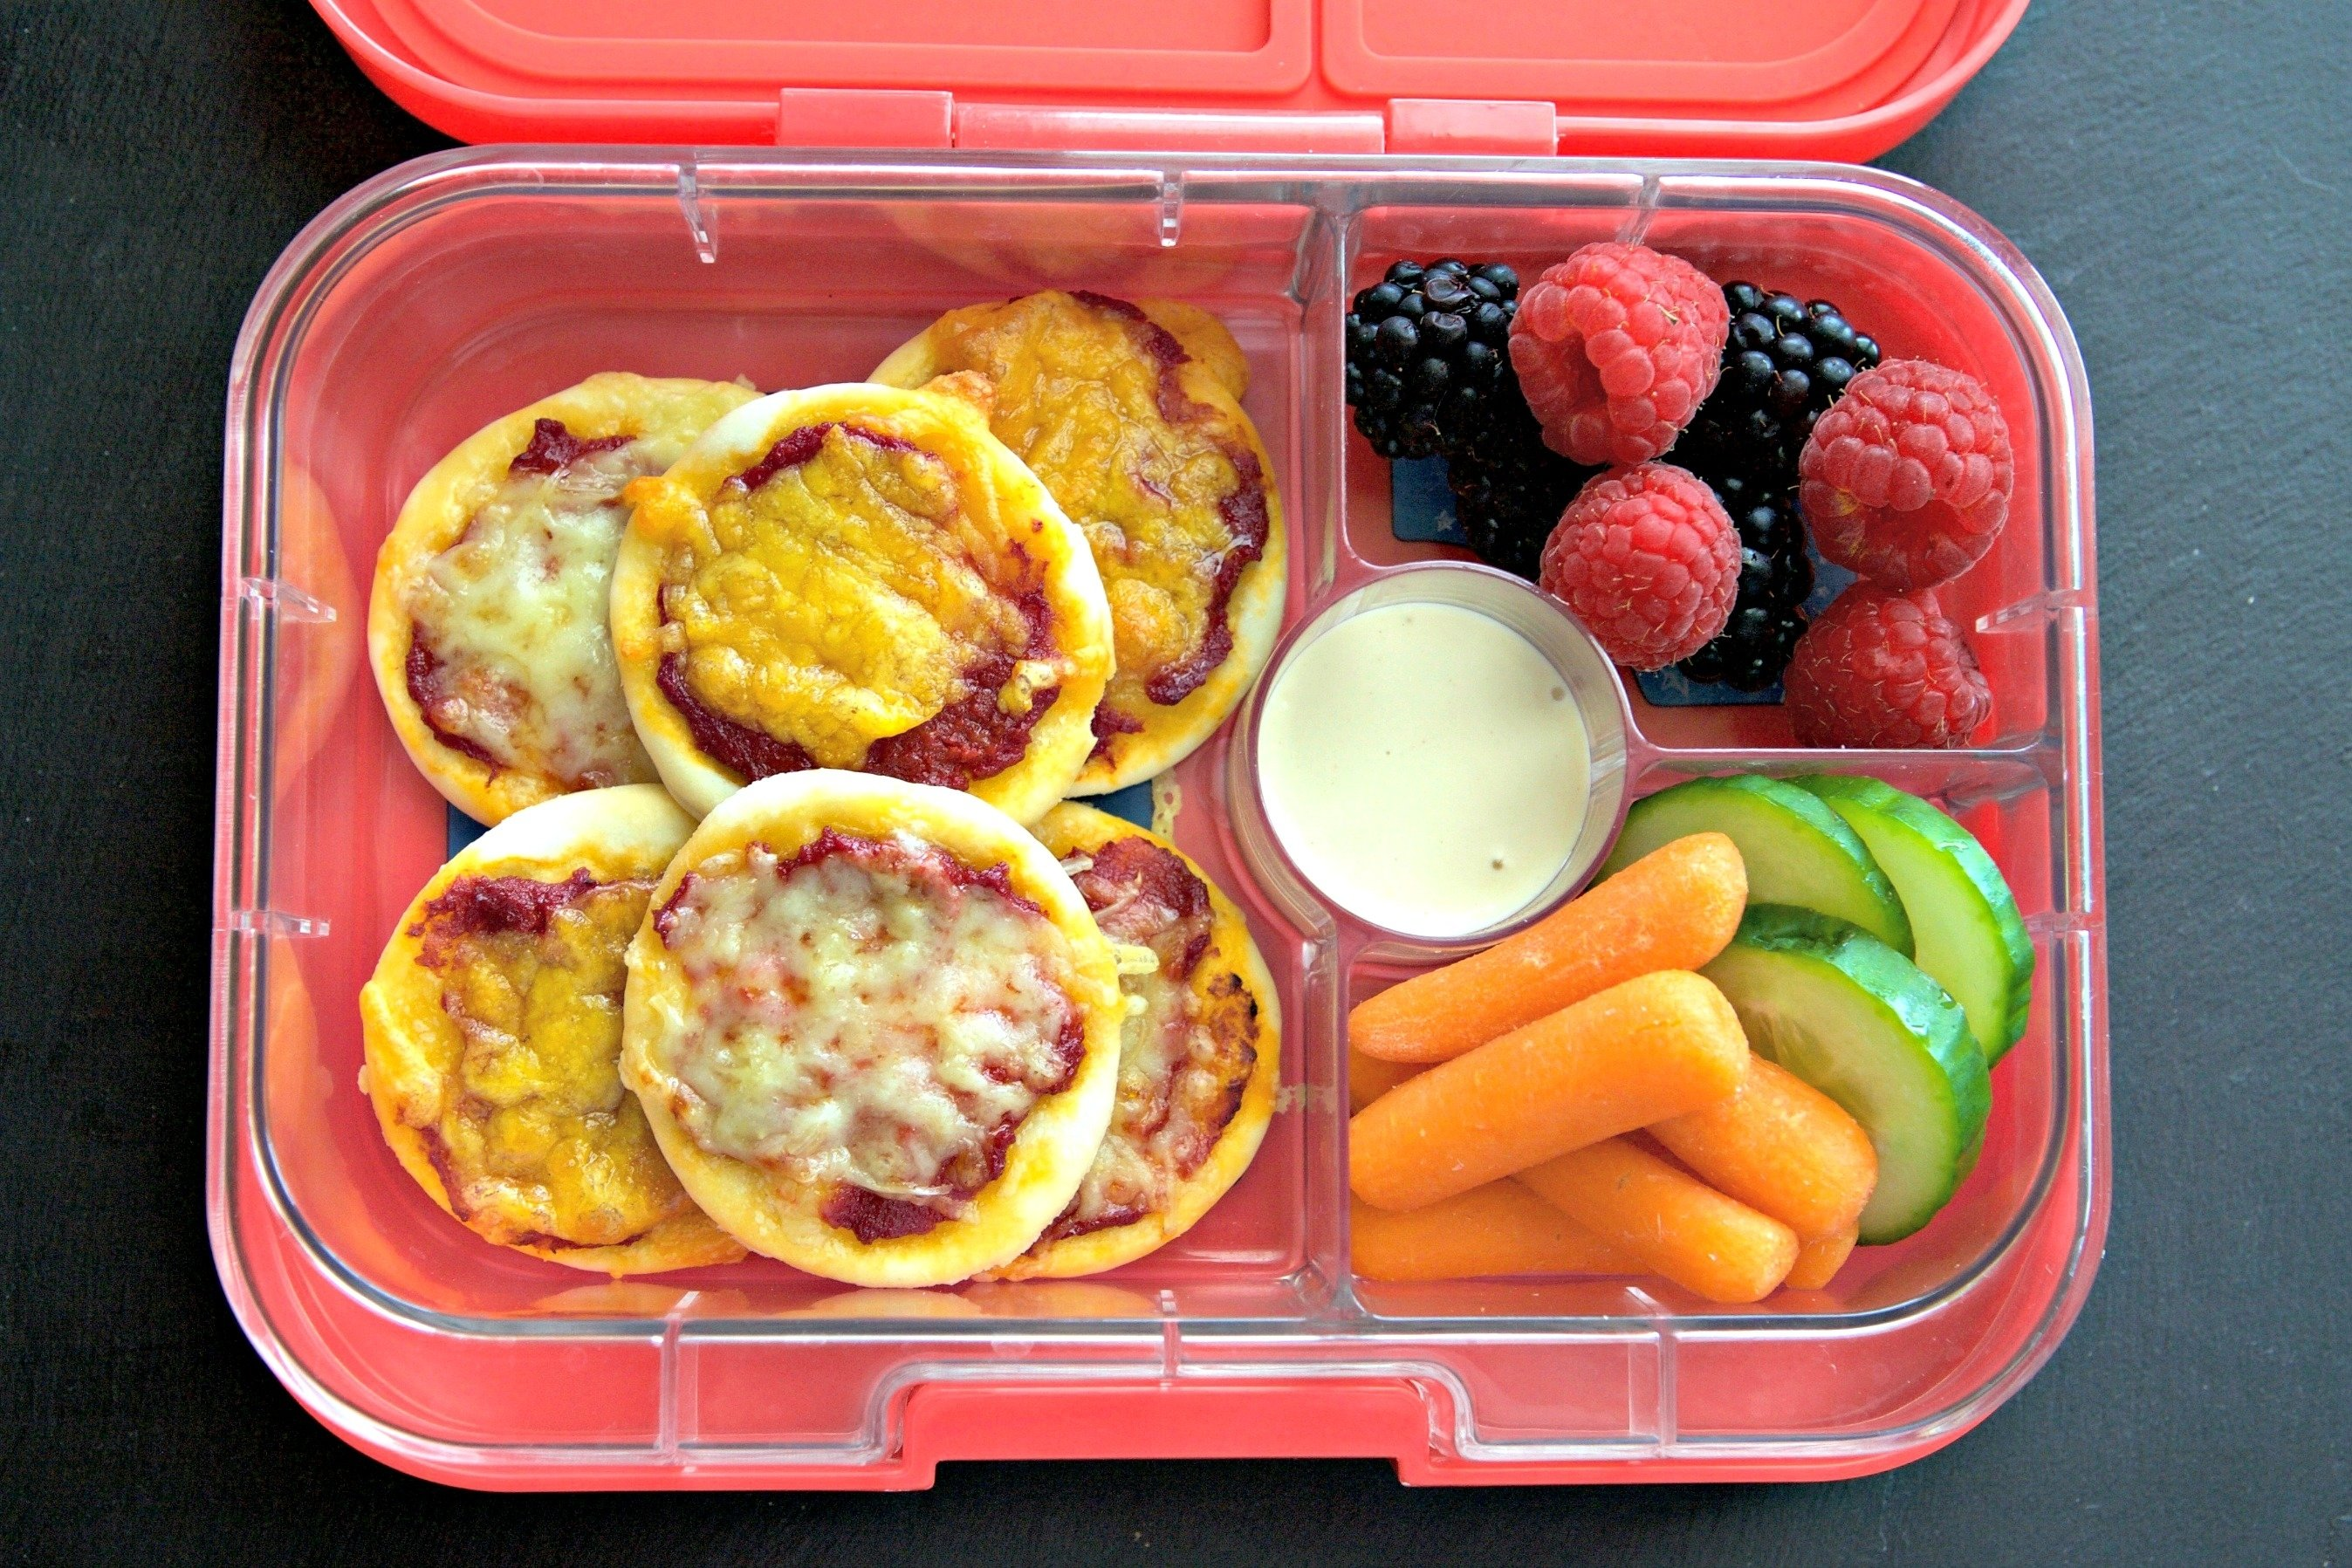 10 Cute Lunch Box Ideas For Picky Eaters Mini Pizza Recipe The Perfect Eater Meal